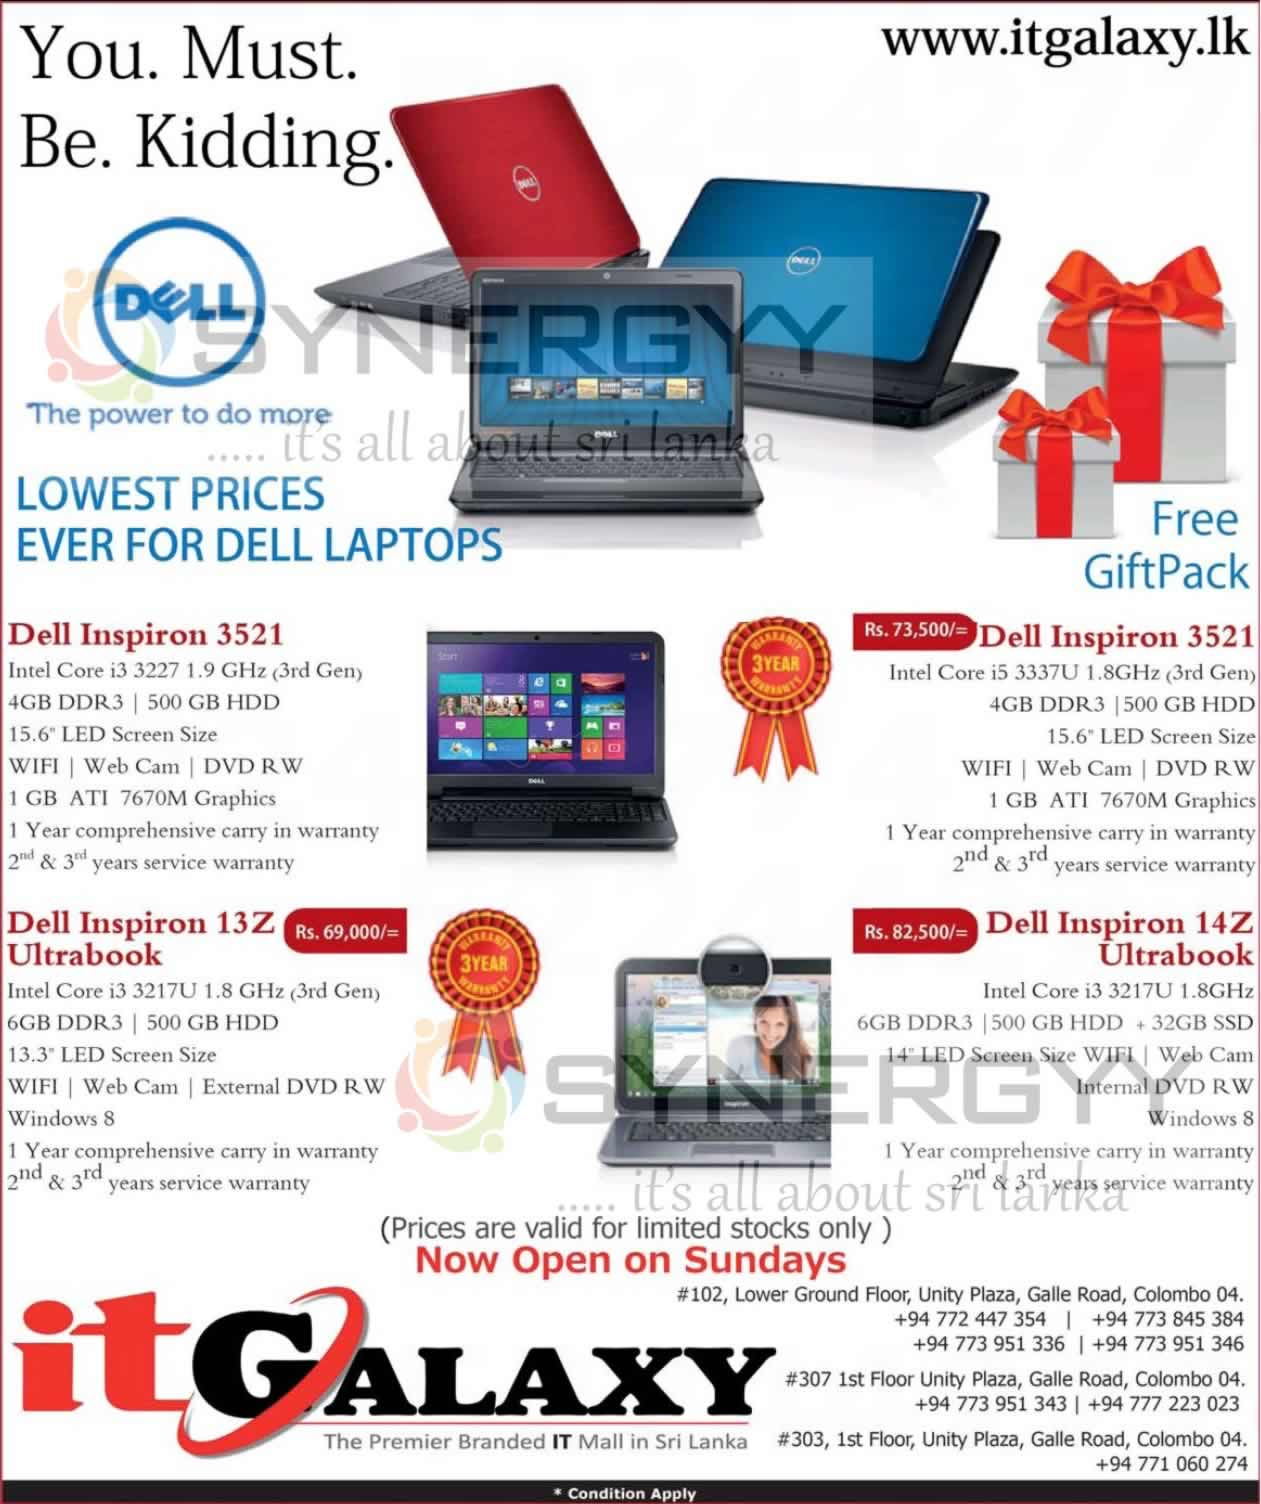 Dell Inspiron Laptop Price In Sri Lanka Price Starts From